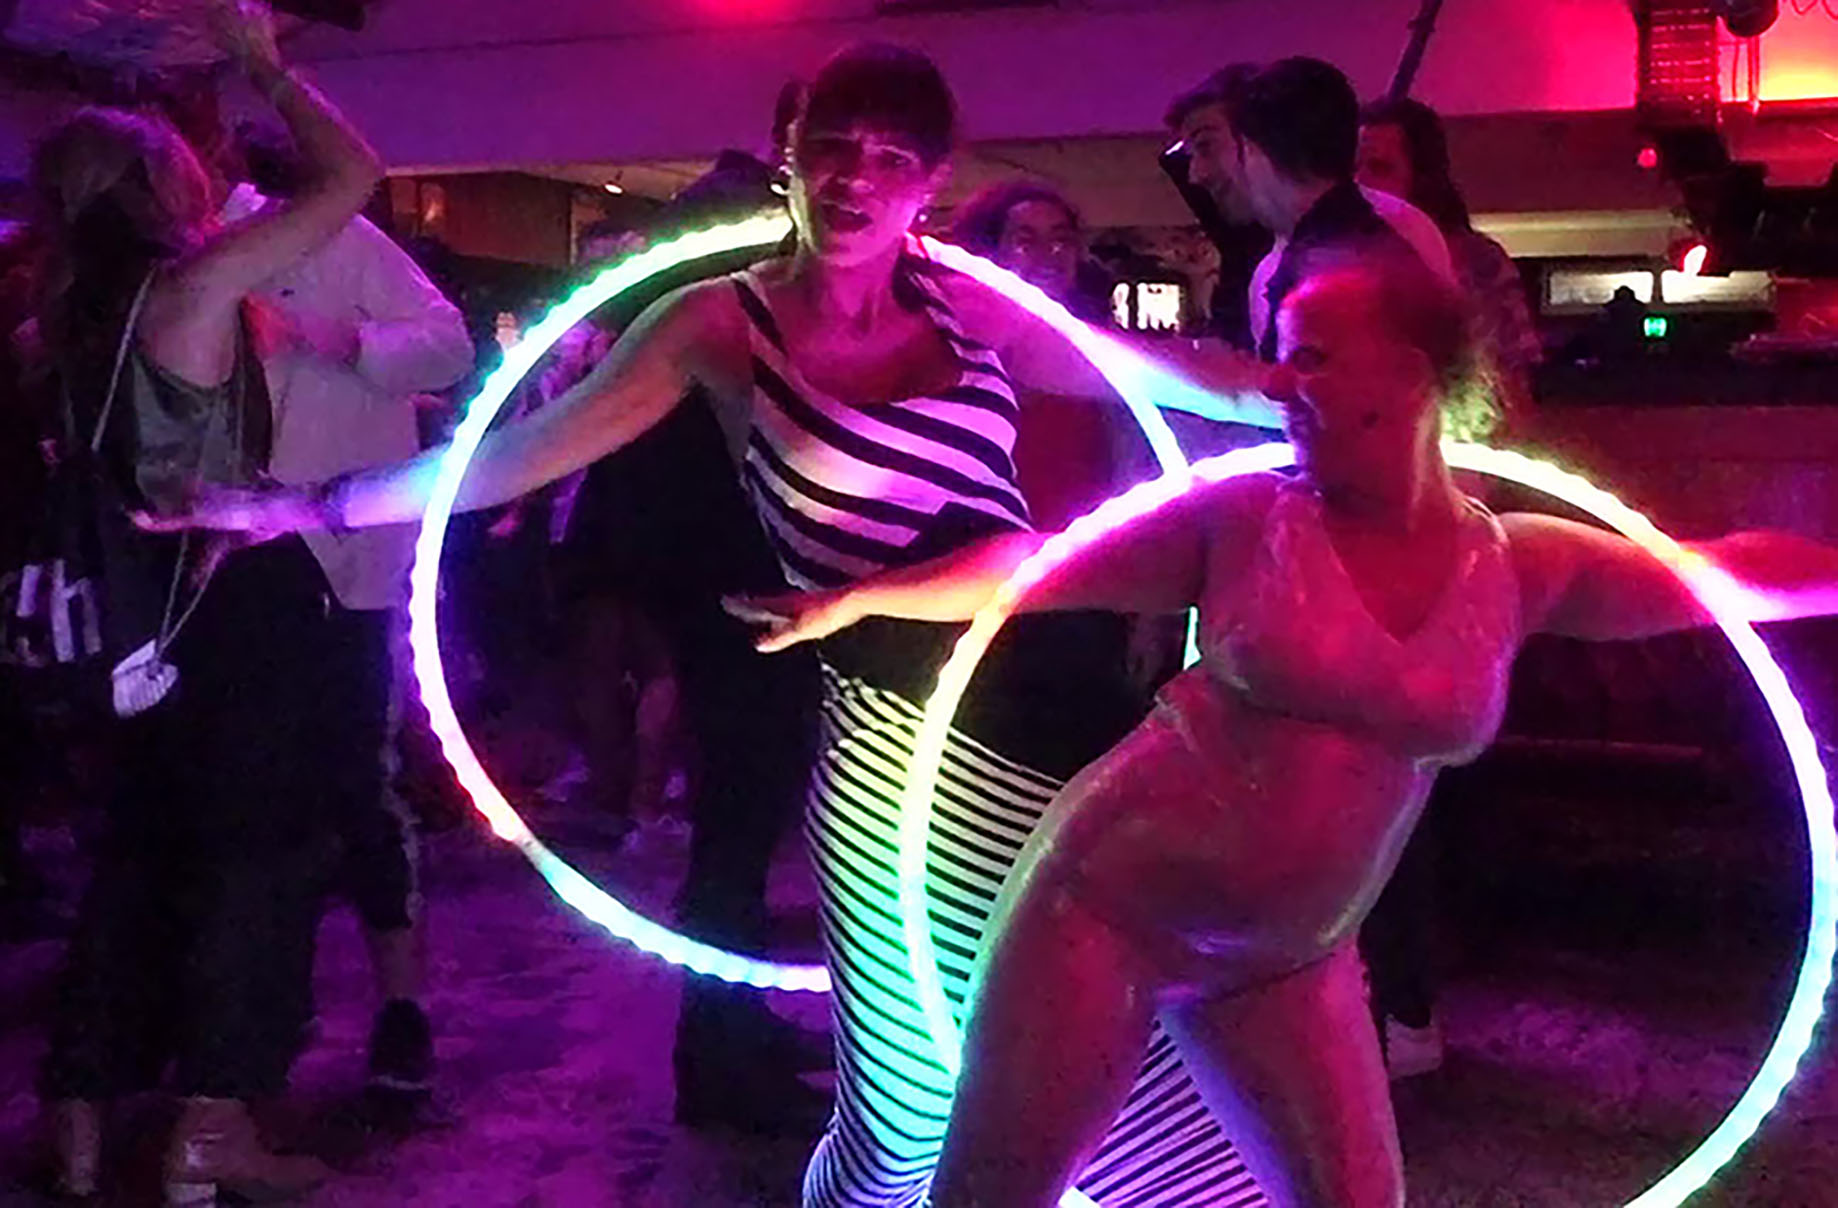 two people dancing with hula hoops at a club. People are dancing in the background.